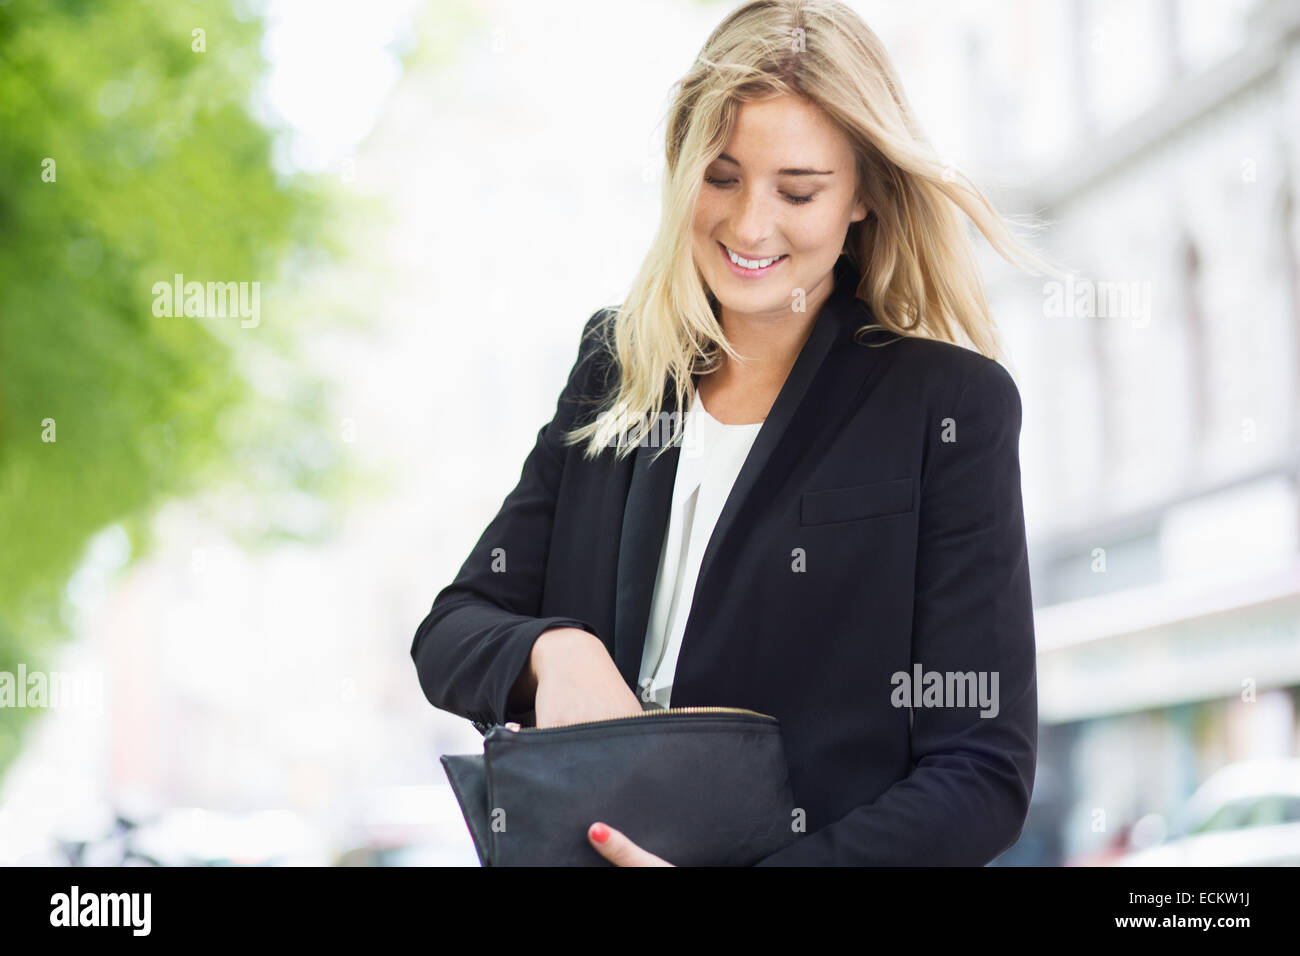 Smiling young woman searching something in her clutch bag outdoors - Stock Image